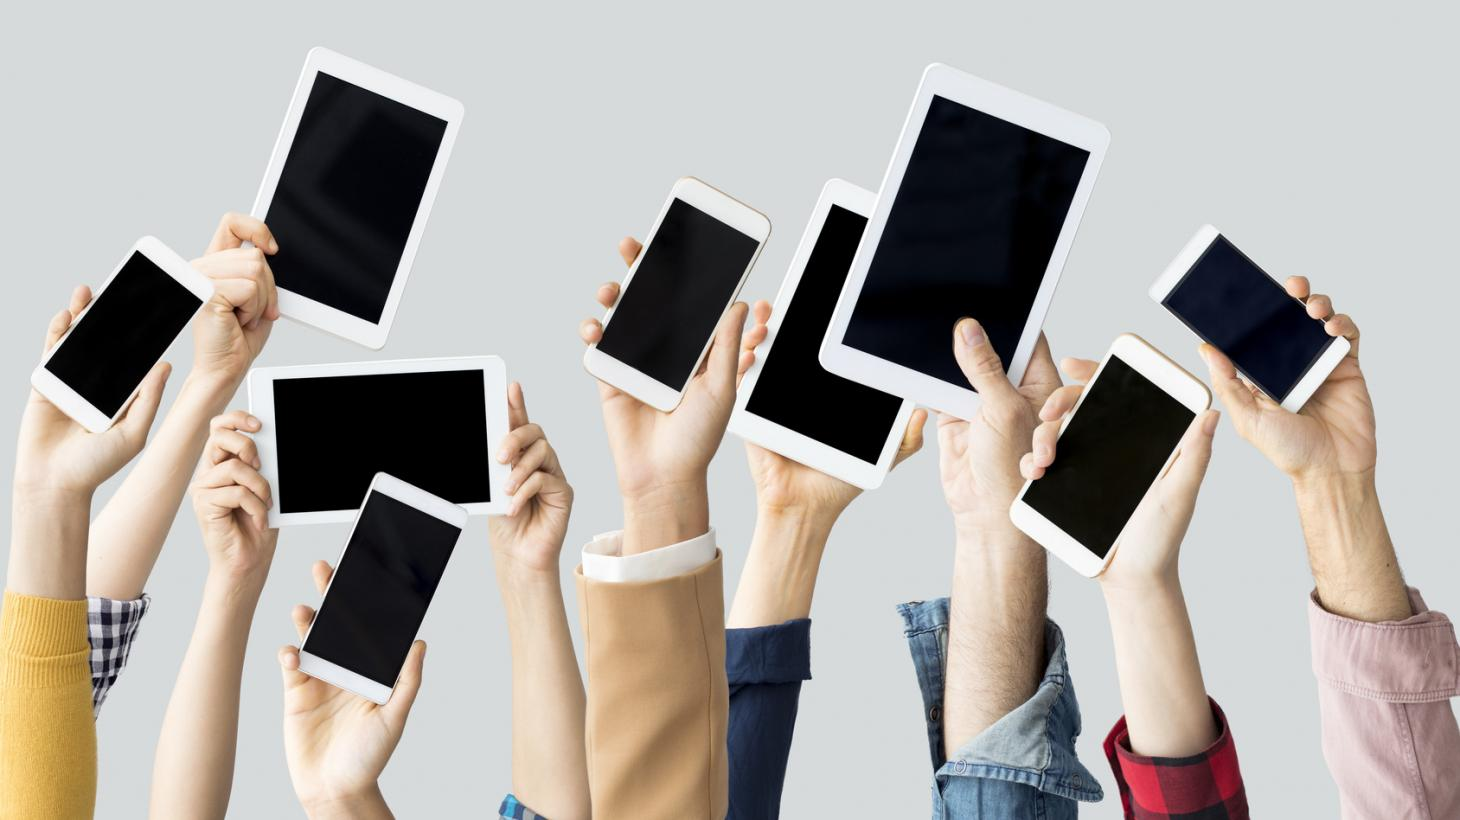 Tablets and phones being held up